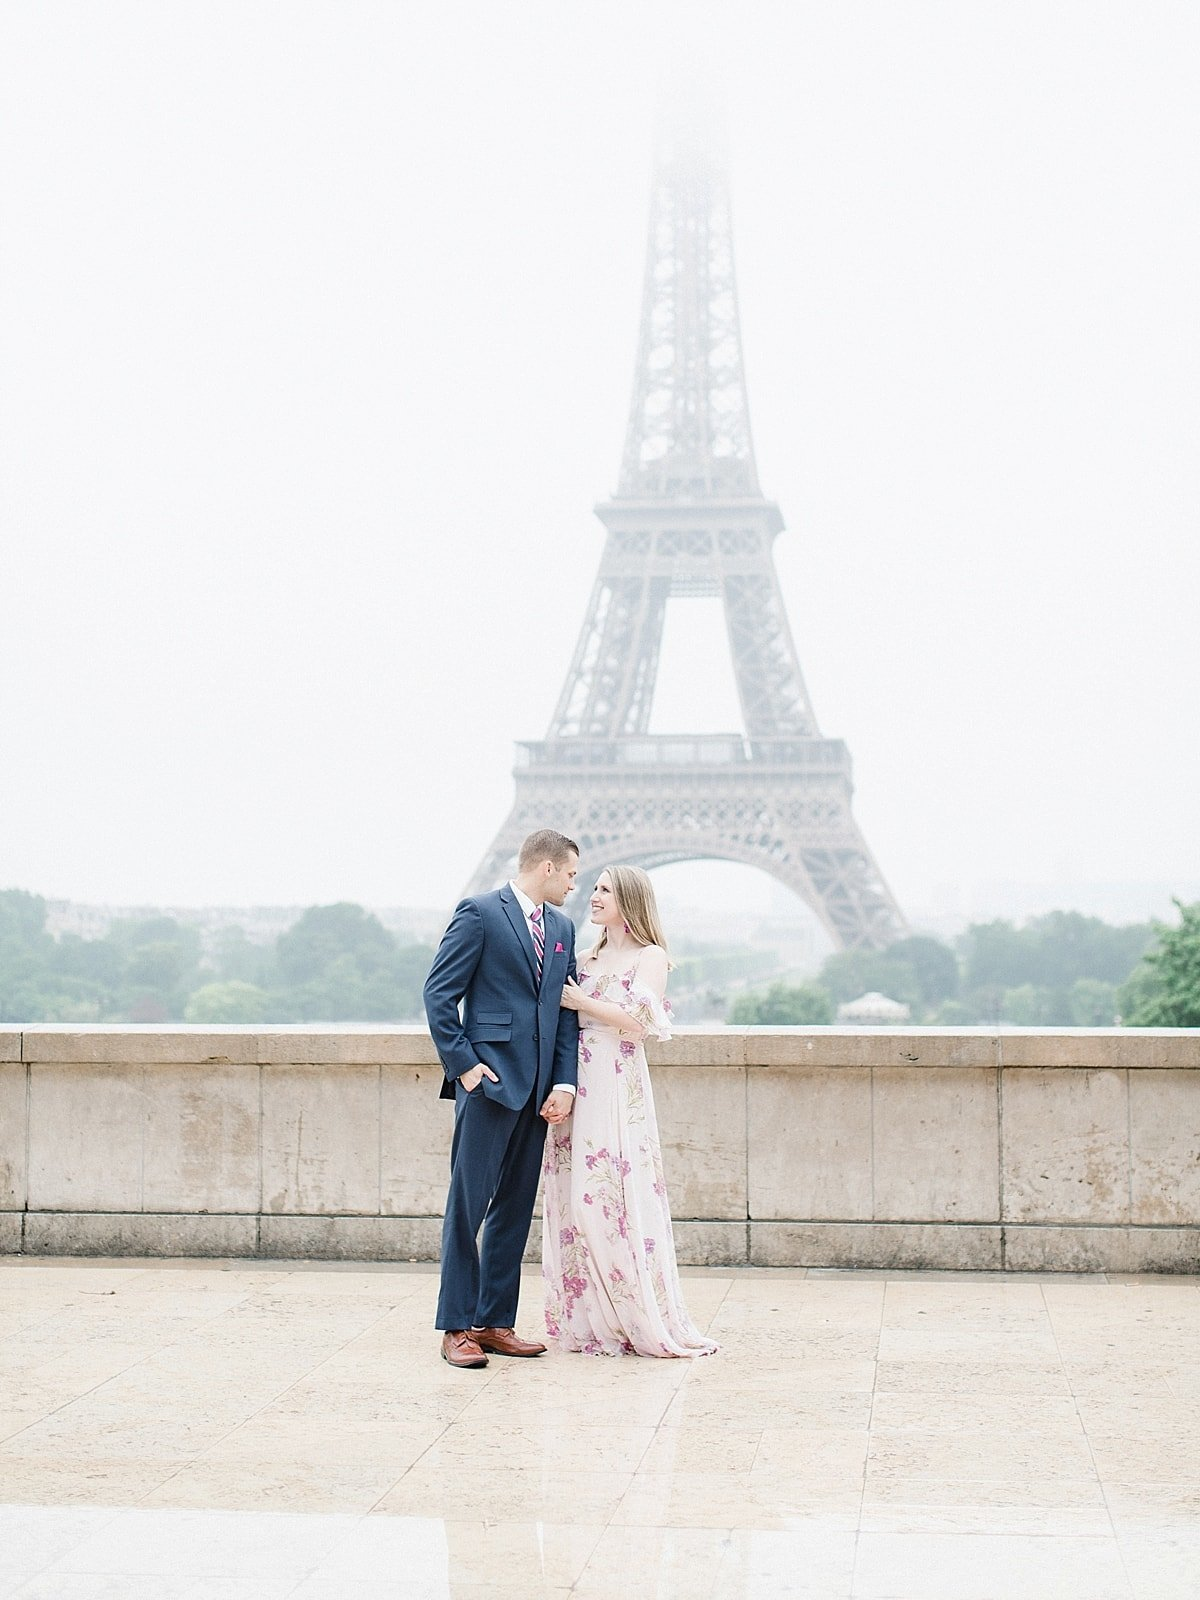 paris-photo-session-anniversary-alicia-yarrish-photography_20